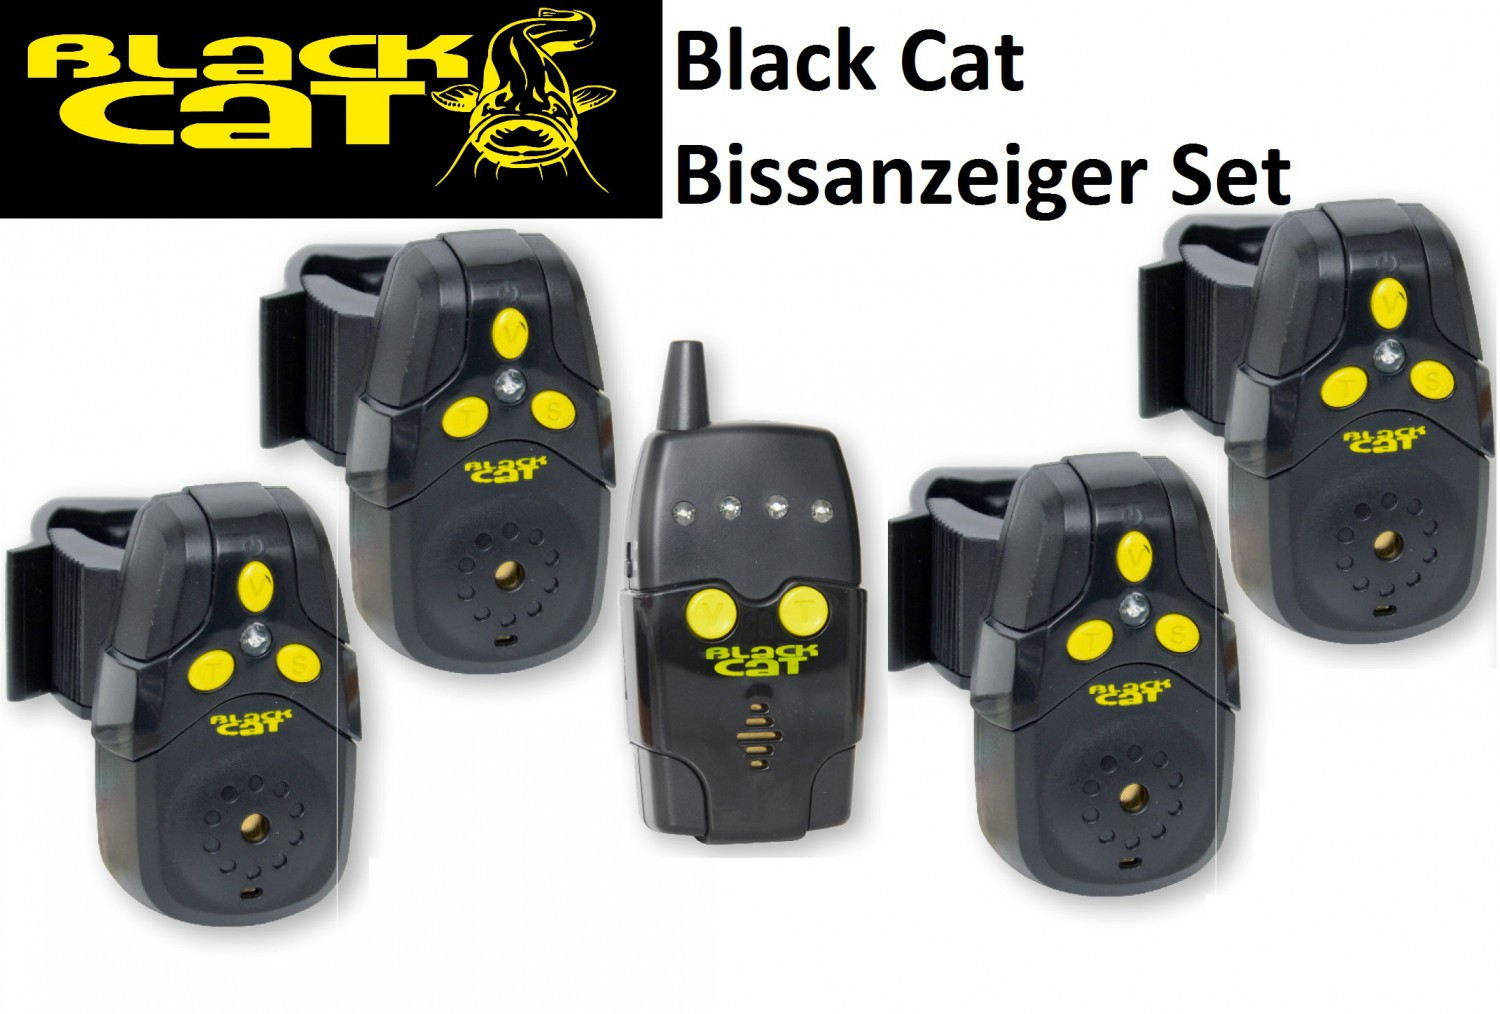 Black Cat Bissanzeiger